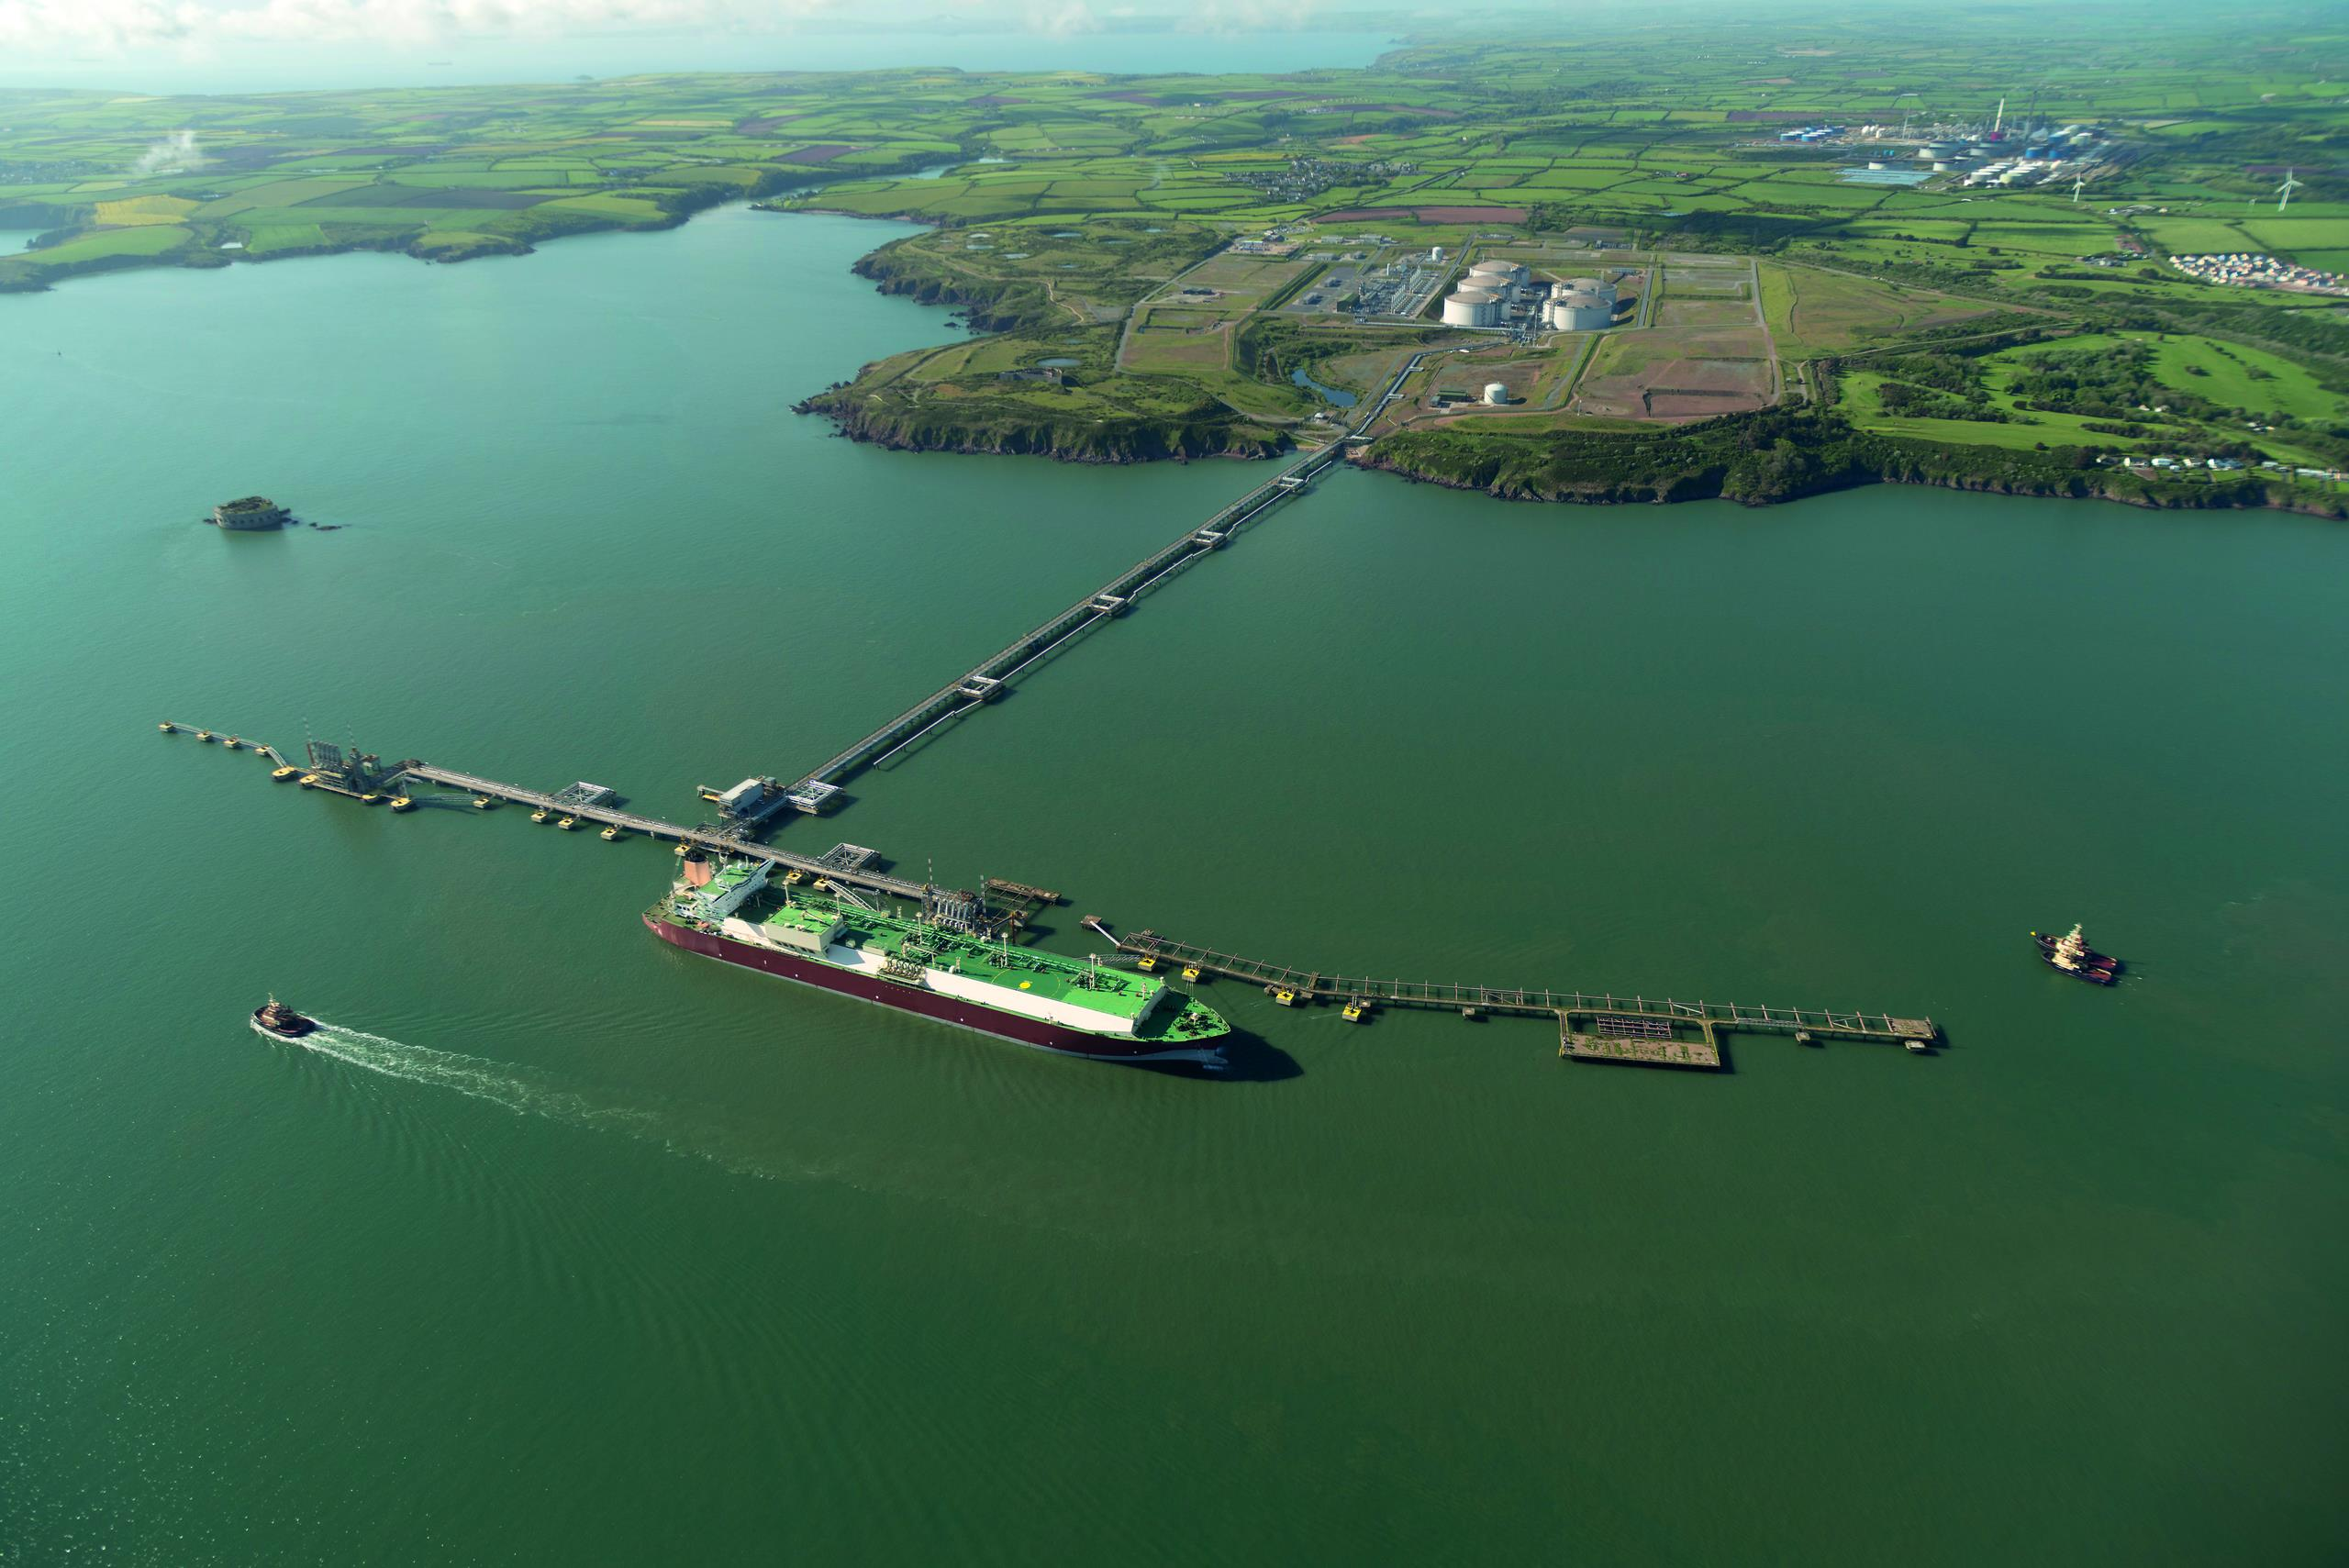 Ariel view of the LNG terminal